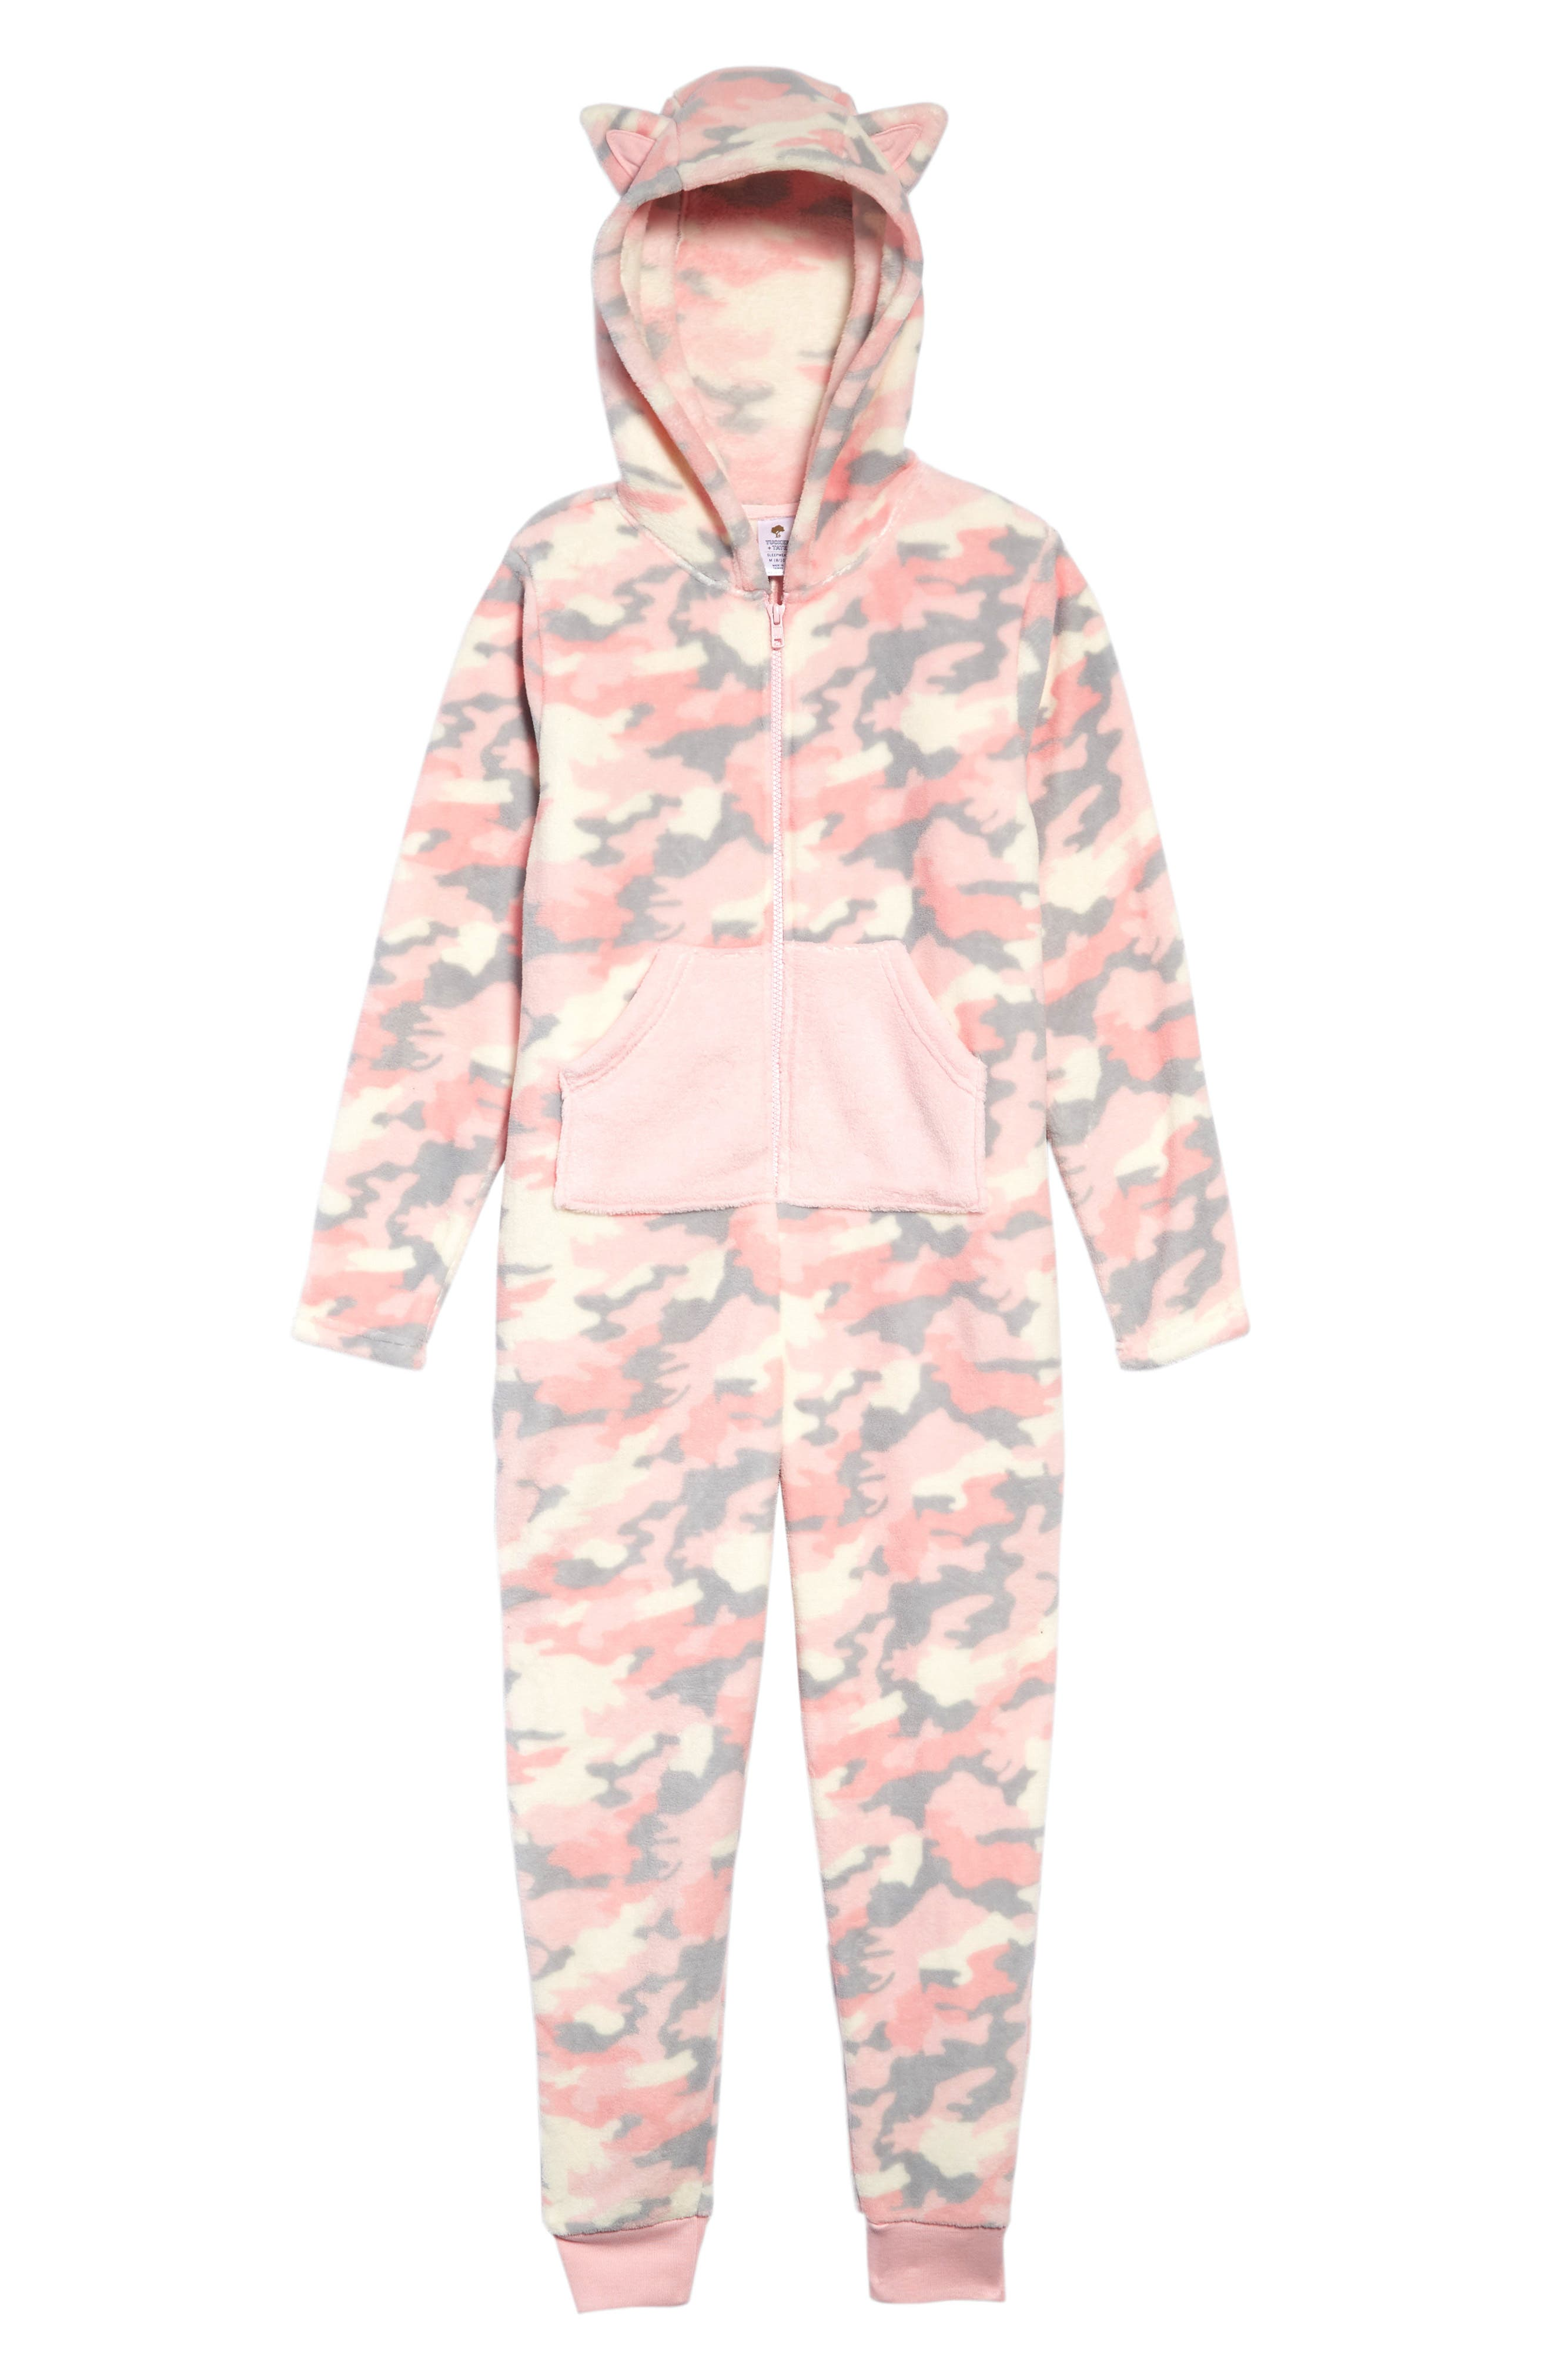 Girls Tucker  Tate Cat Ear OnePiece Pajamas Size L (1012)  Pink